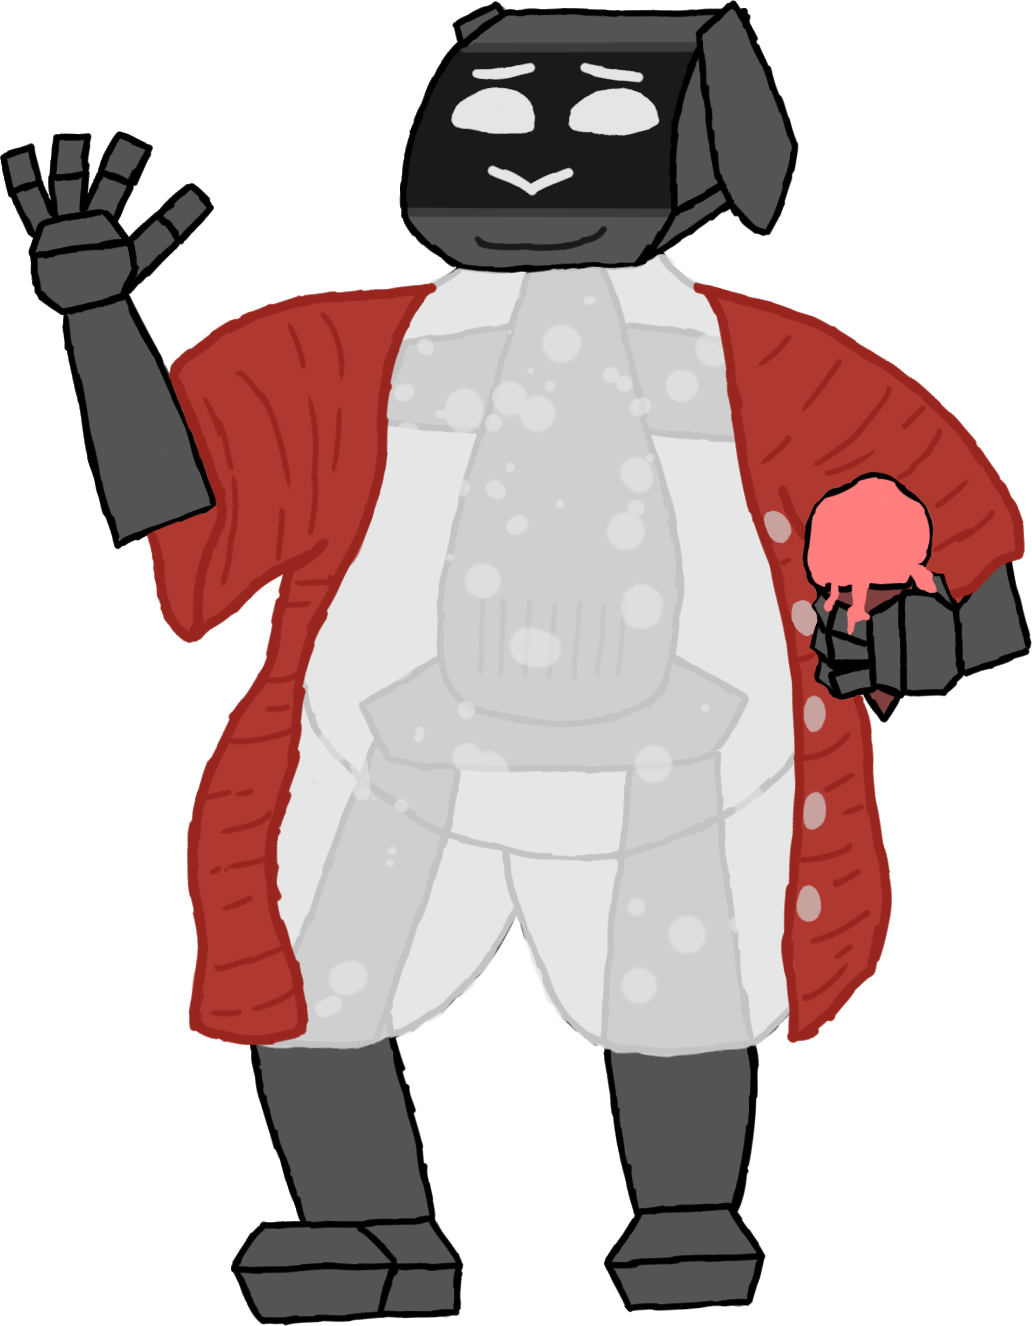 A very fat, four-foot tall, robot bunny lady. She is waving, smiling, and holding a strawberry ice cream cone. Her eyes and nose are a display, and most of her body has a soft layer that acts as a robotic analog to fat.